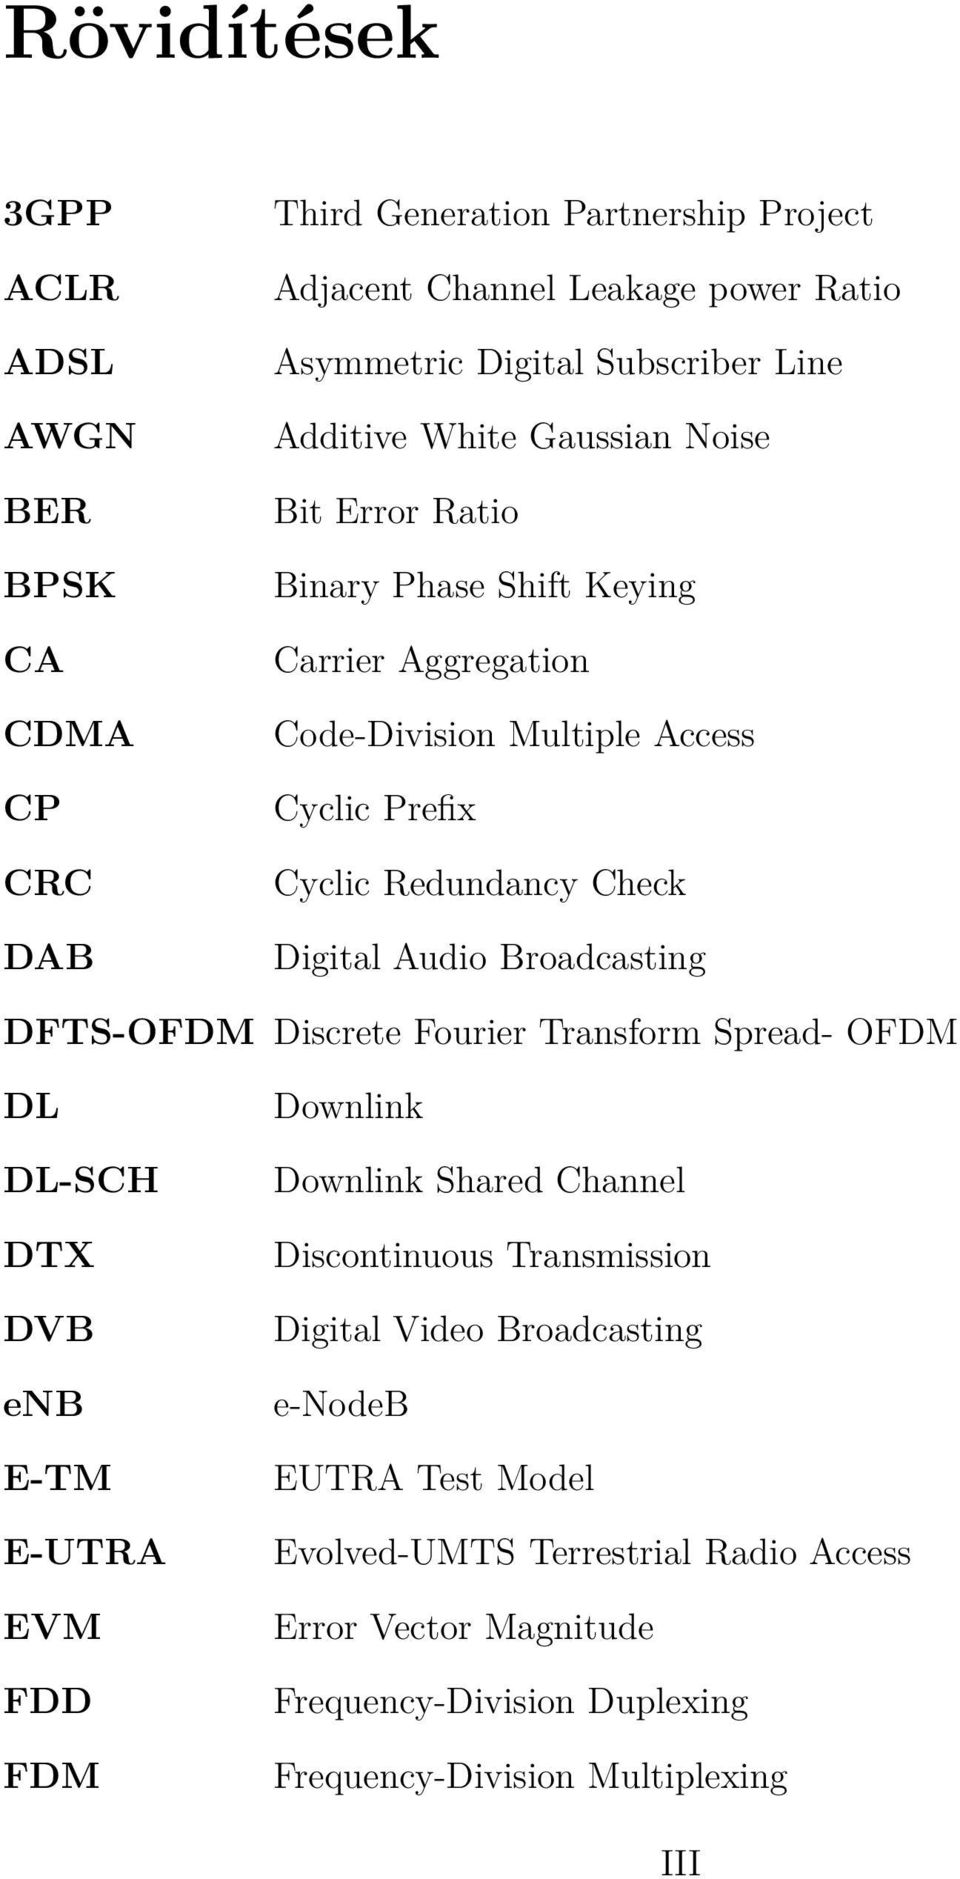 Audio Broadcasting DFTS-OFDM Discrete Fourier Transform Spread- OFDM DL DL-SCH DTX DVB enb E-TM E-UTRA EVM FDD FDM Downlink Downlink Shared Channel Discontinuous